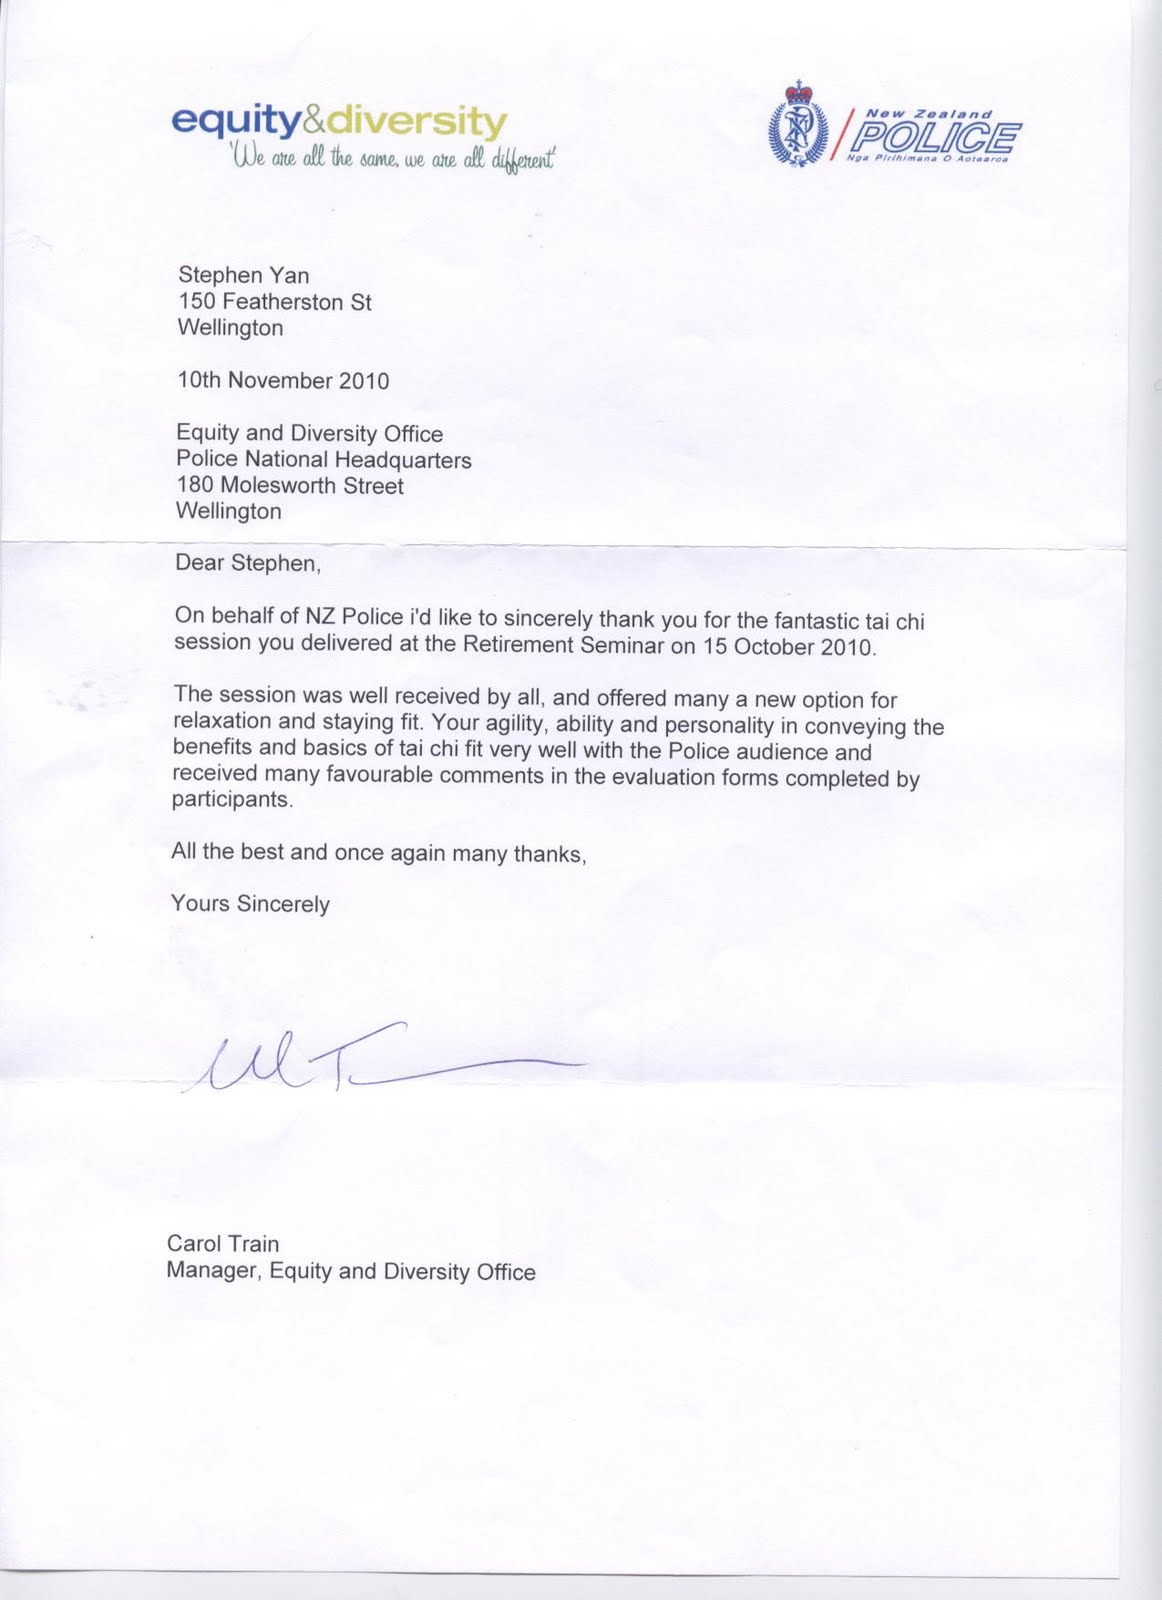 Dr Stephen Yan Martial Arts Blog Thank you letter from NZ Police